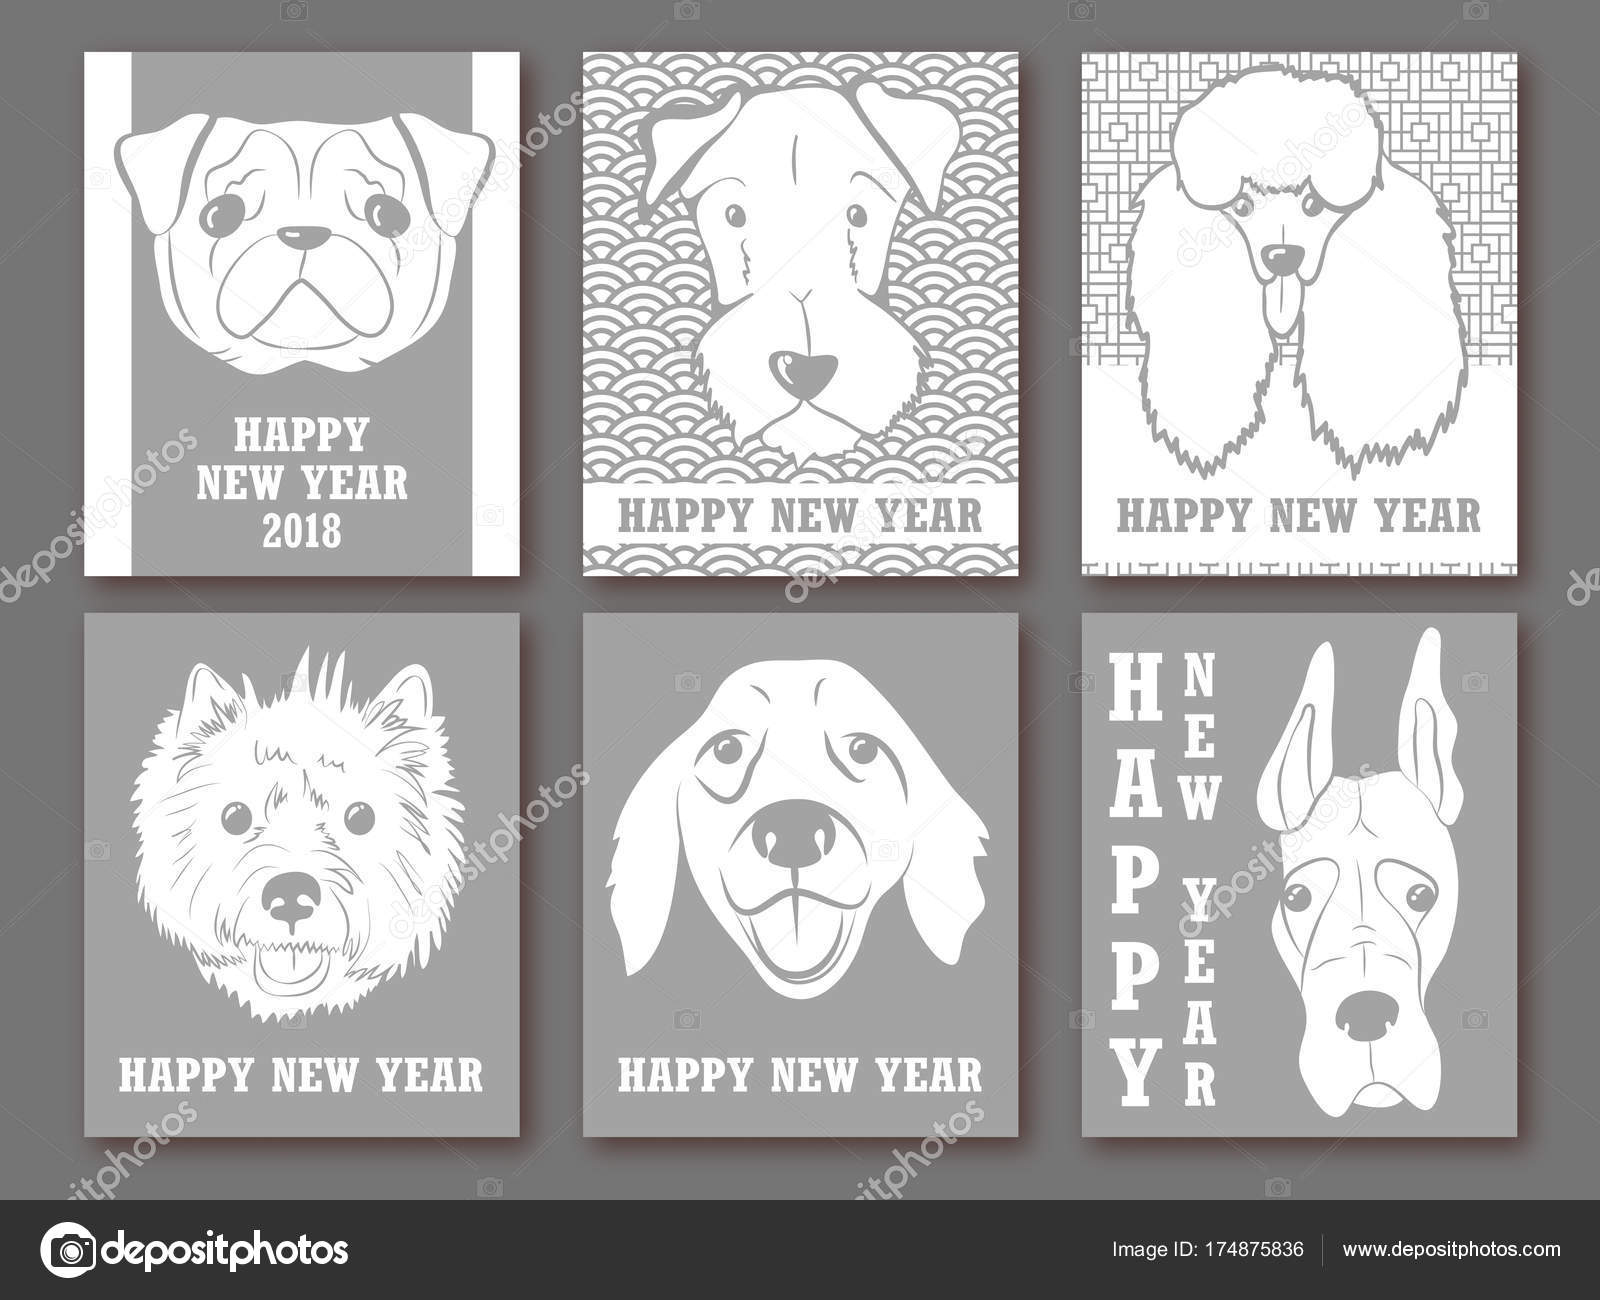 happy new year 2018 set of greeting card invitation poster design templates with